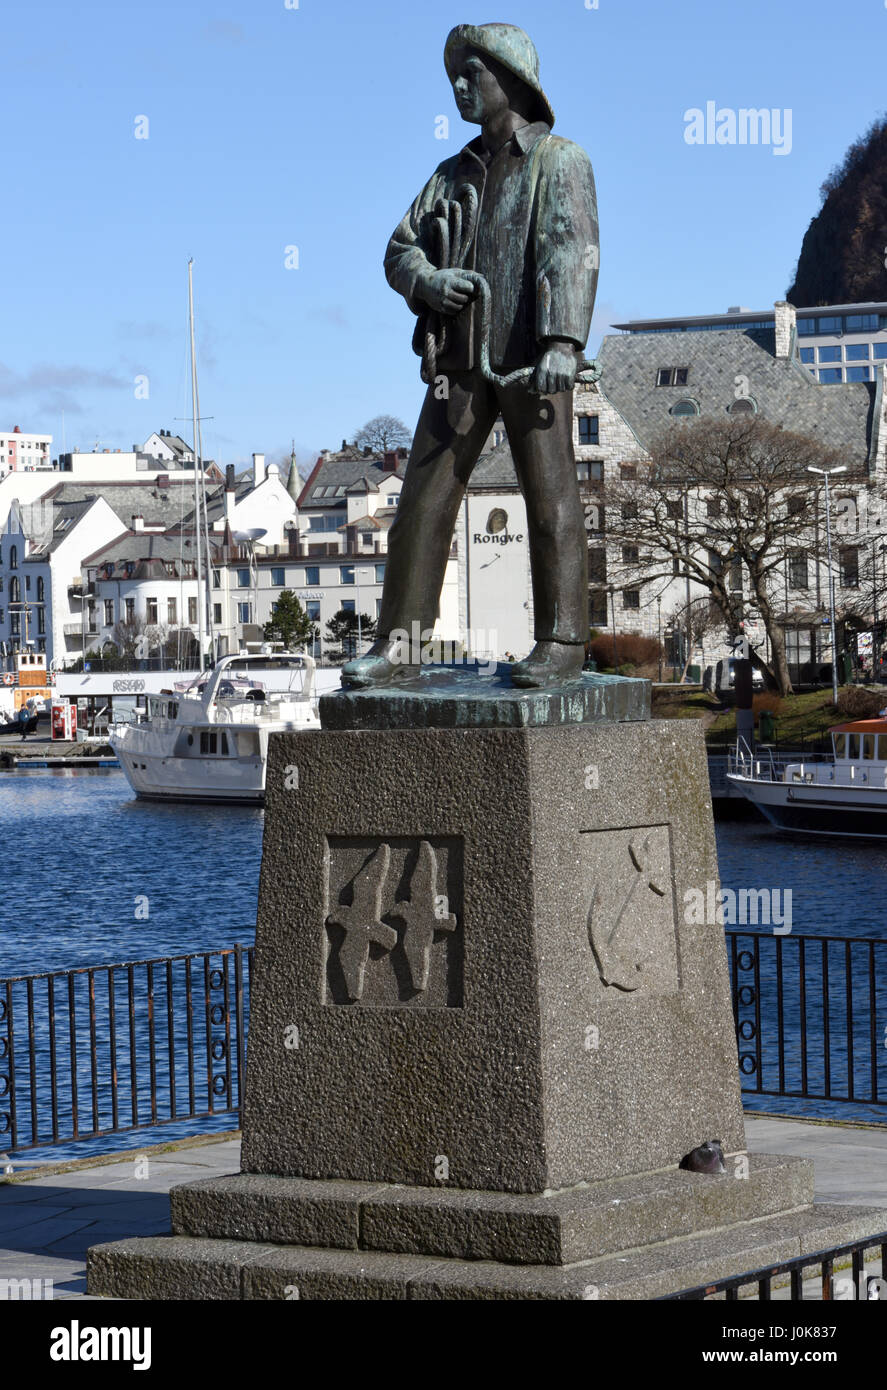 A statue on the waterfront of the harbour at  Alesund. The statue represents a young fisherman: Skårungen, - Stock Image